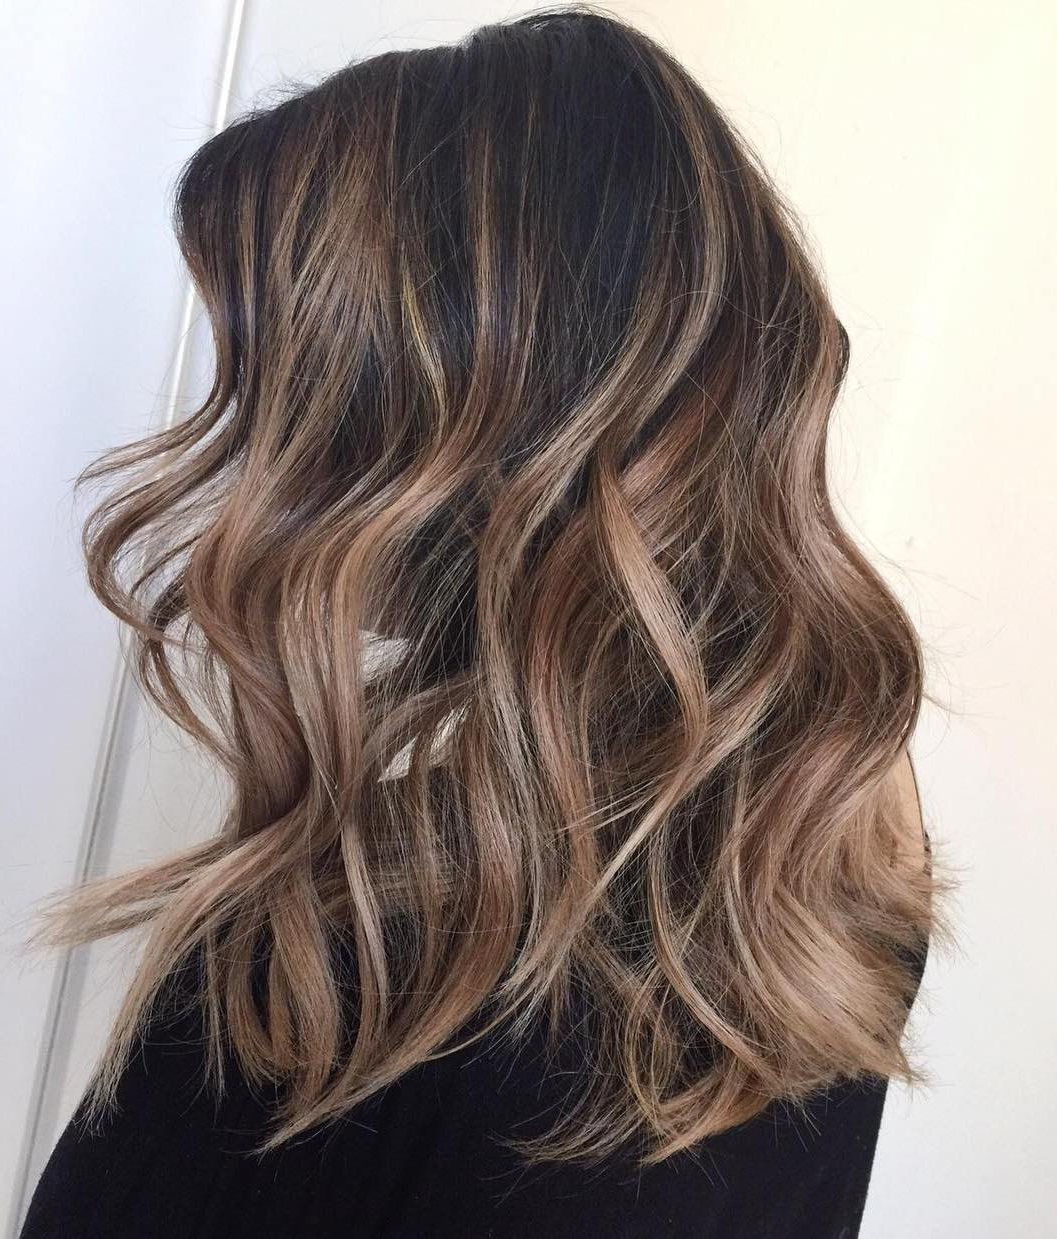 Fashionable Voluminous Long Caramel Hairstyles Within The Greatest Balayage Hair Inspiration For Your Next Salon (View 13 of 20)